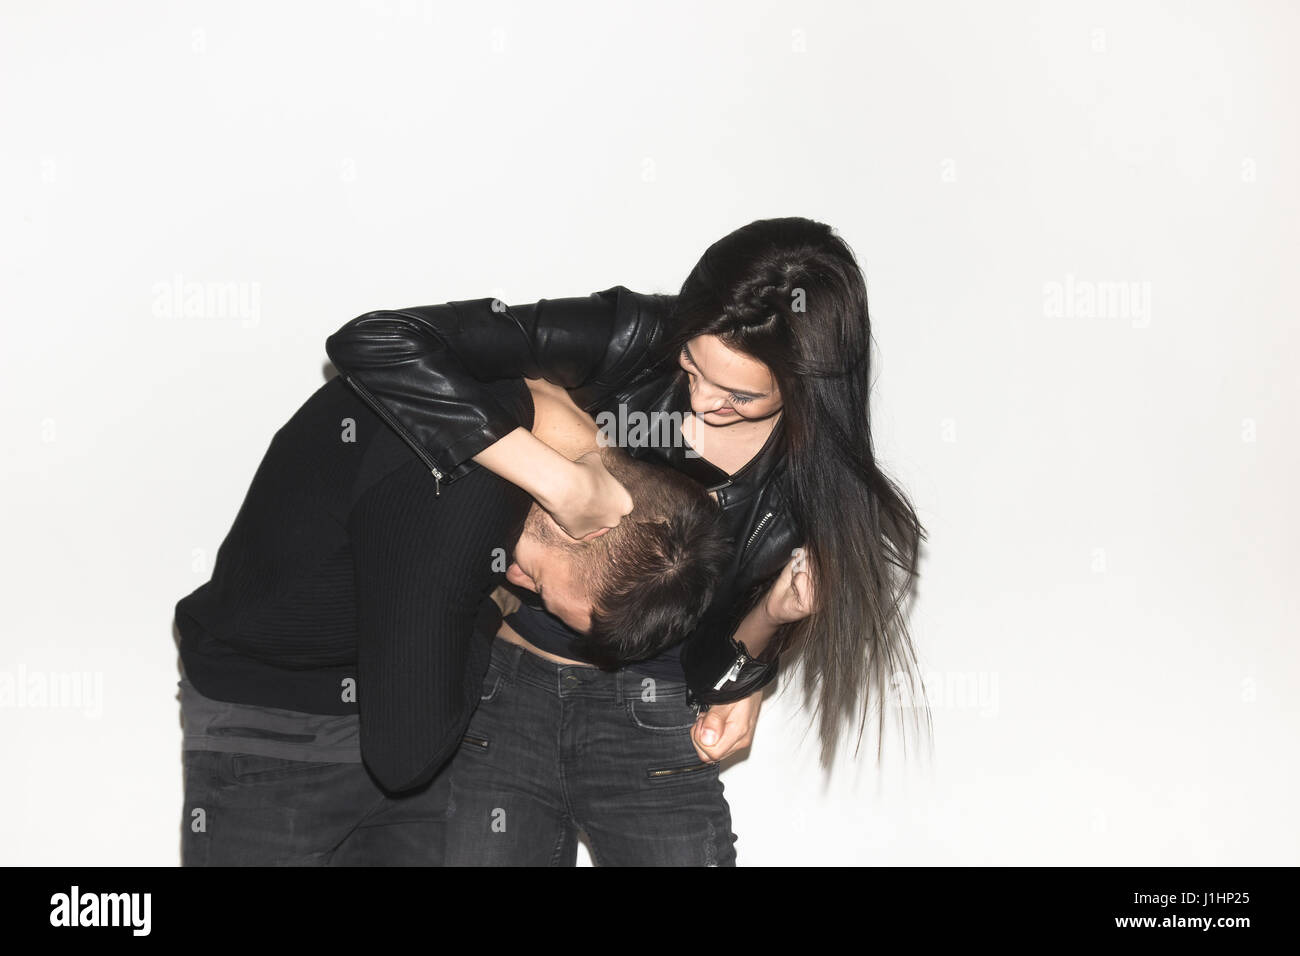 two people, young adult candid, brother sister, woman man, punching, white background - Stock Image